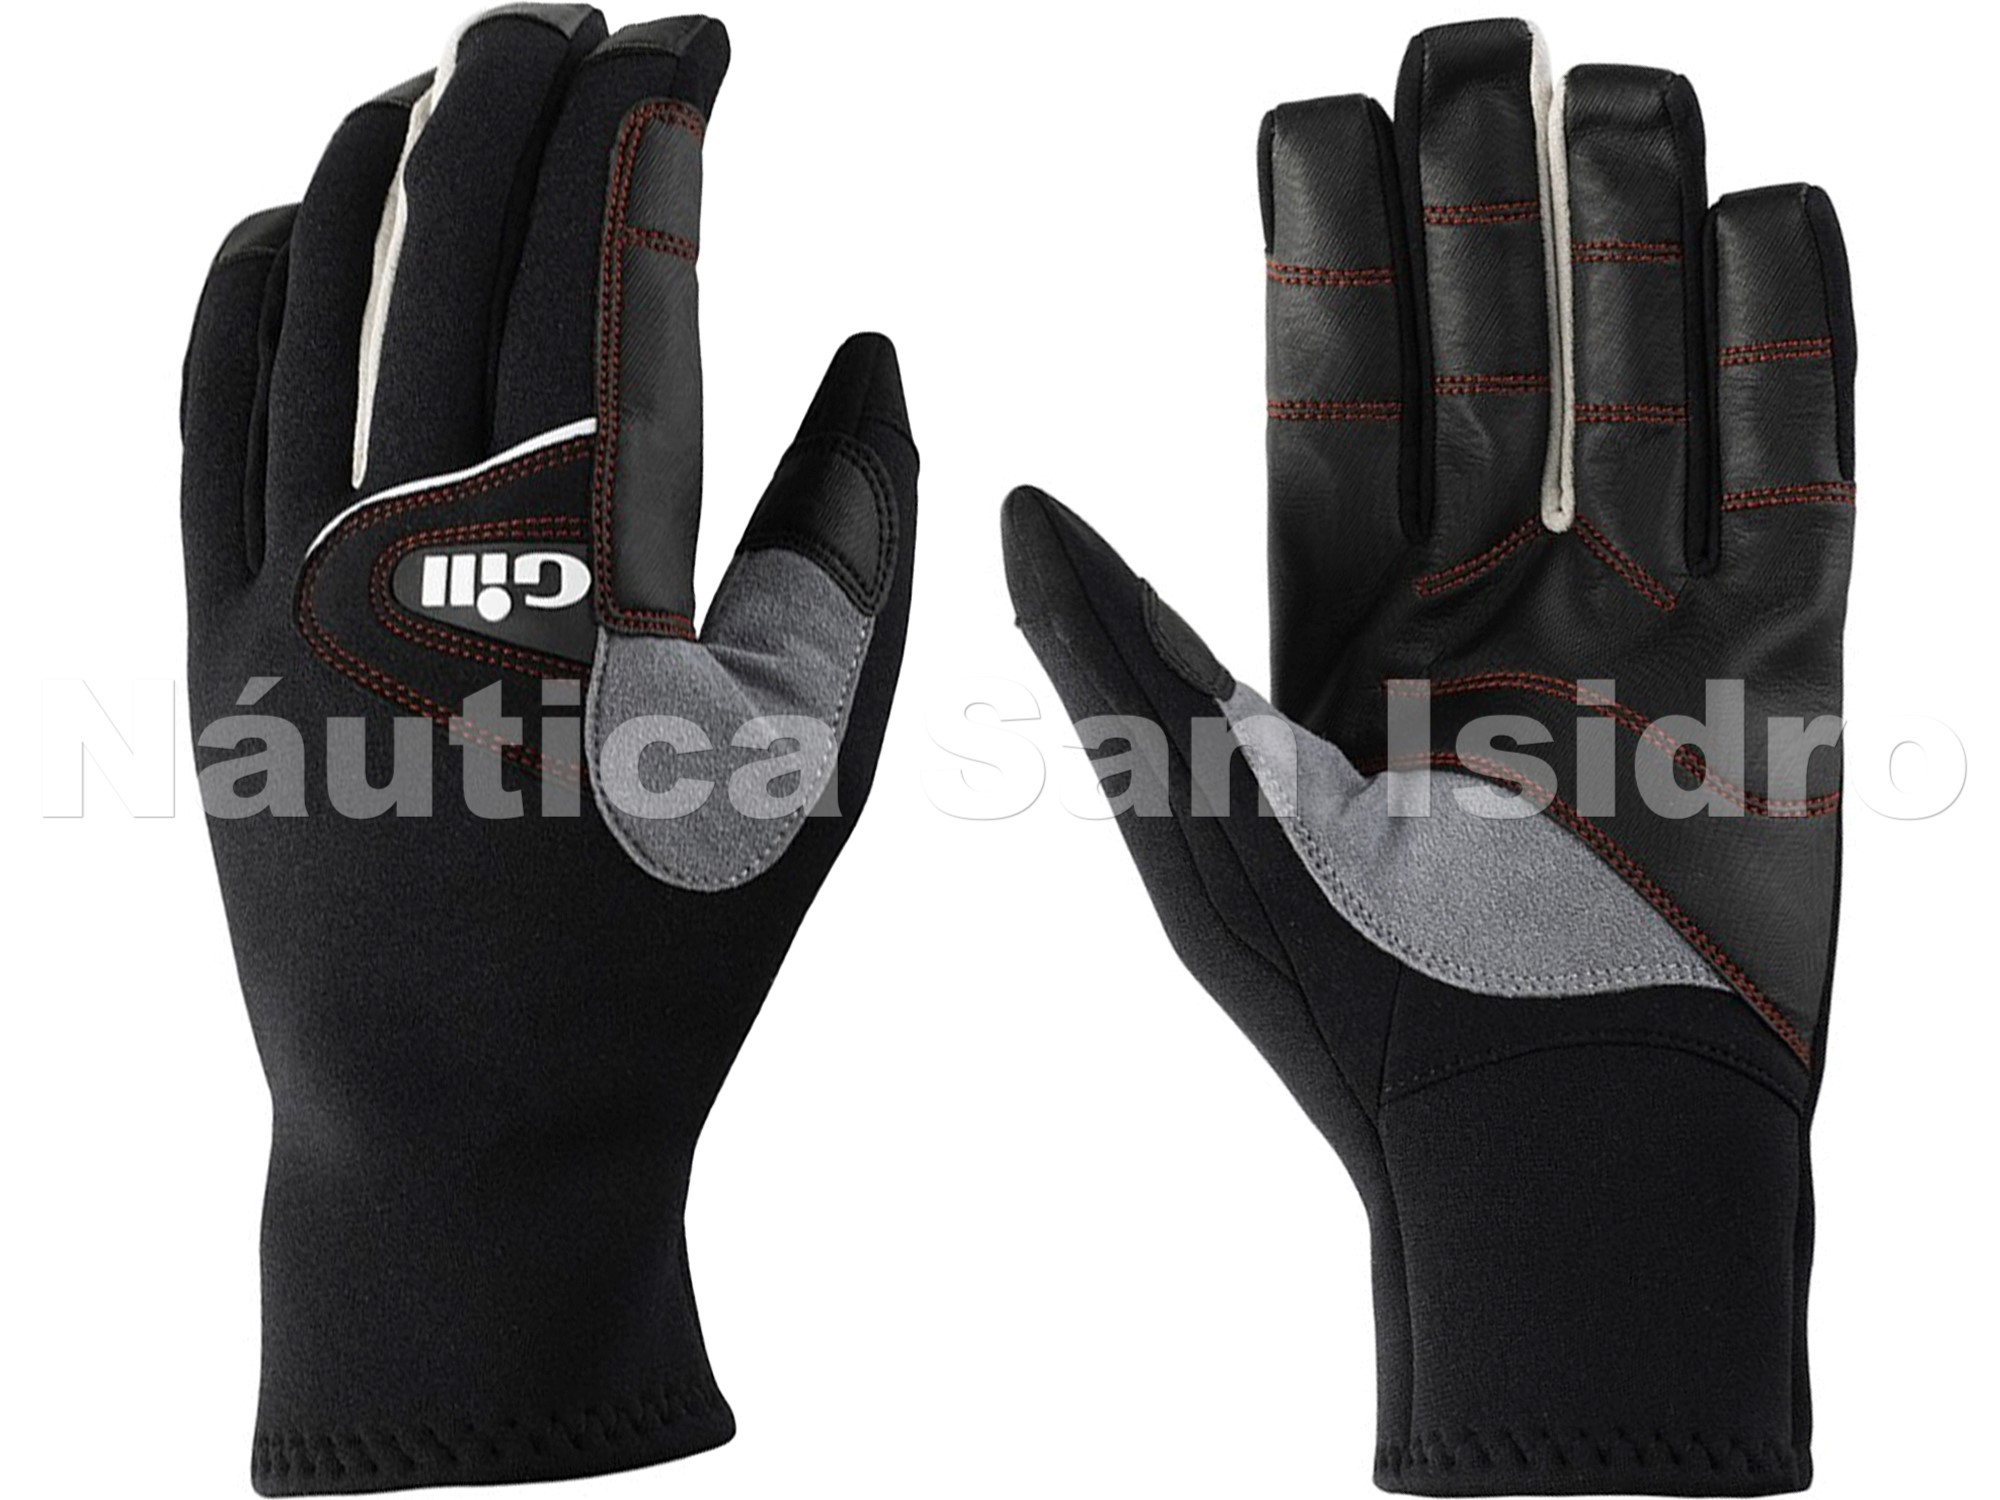 GUANTES NAUTICOS GILL NEOPRENE 3 SEASONS